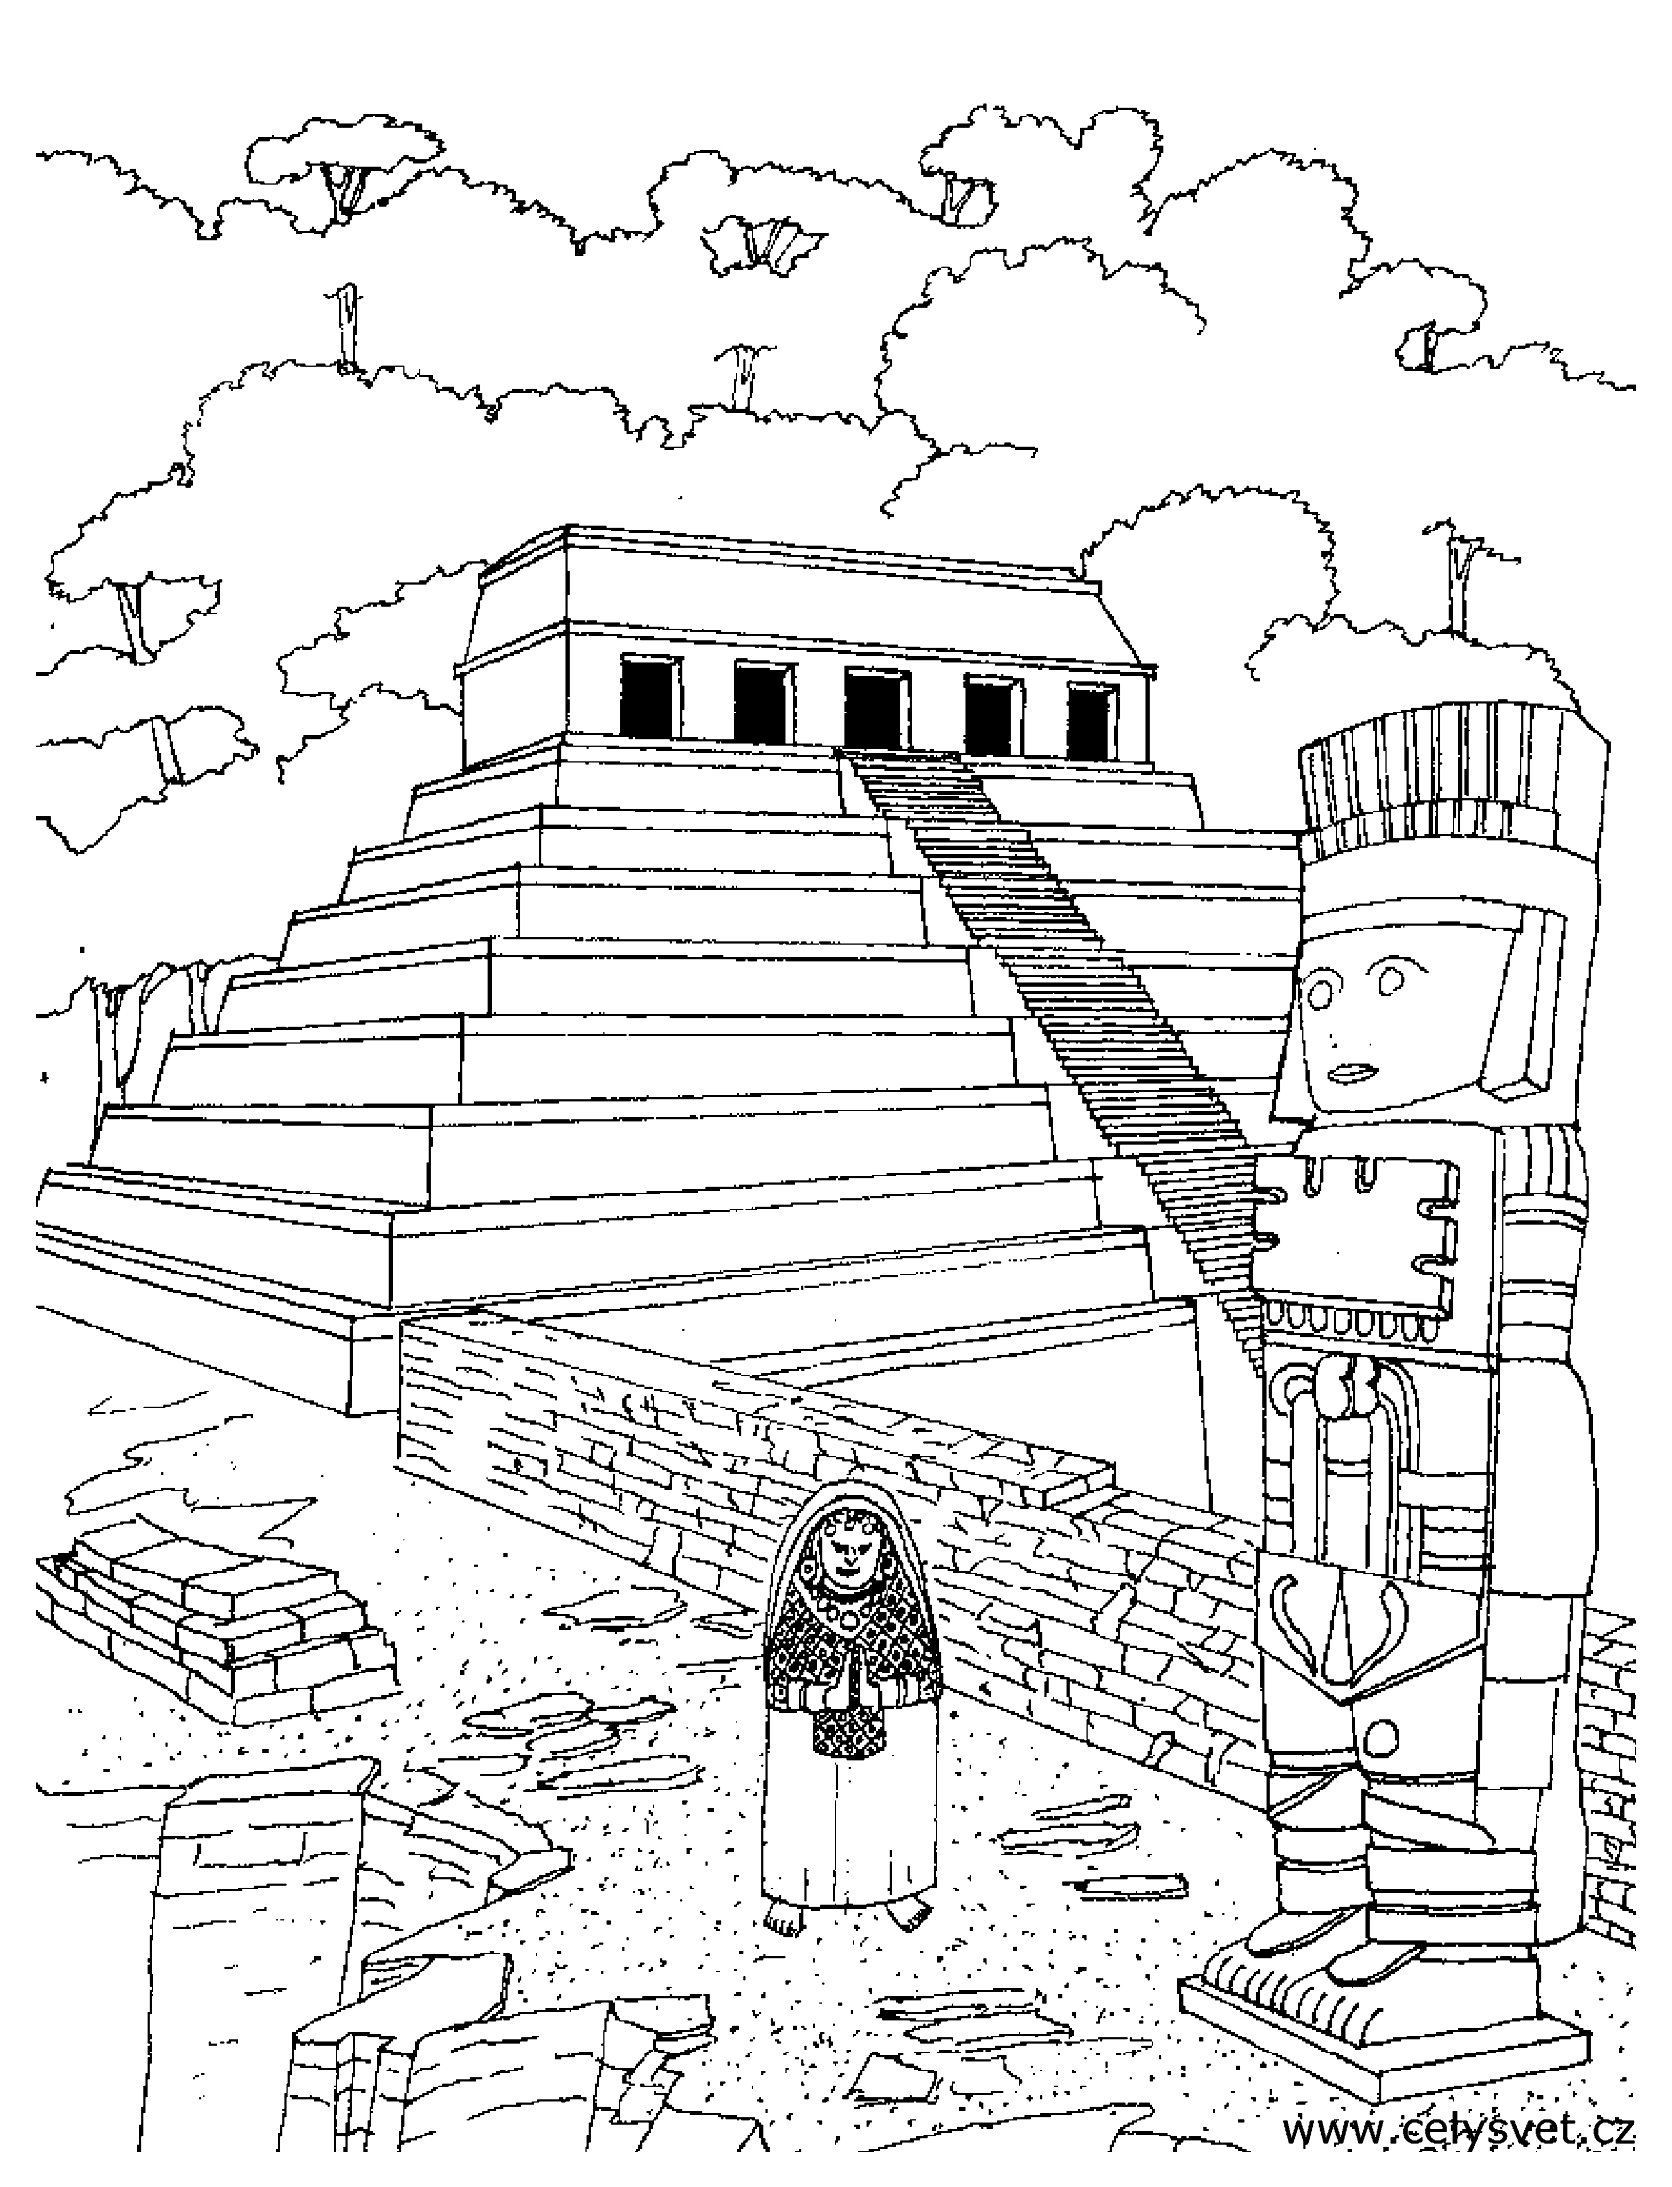 Coloring Page Of An Aztec Temple Inca Art South American Art Aztec Art